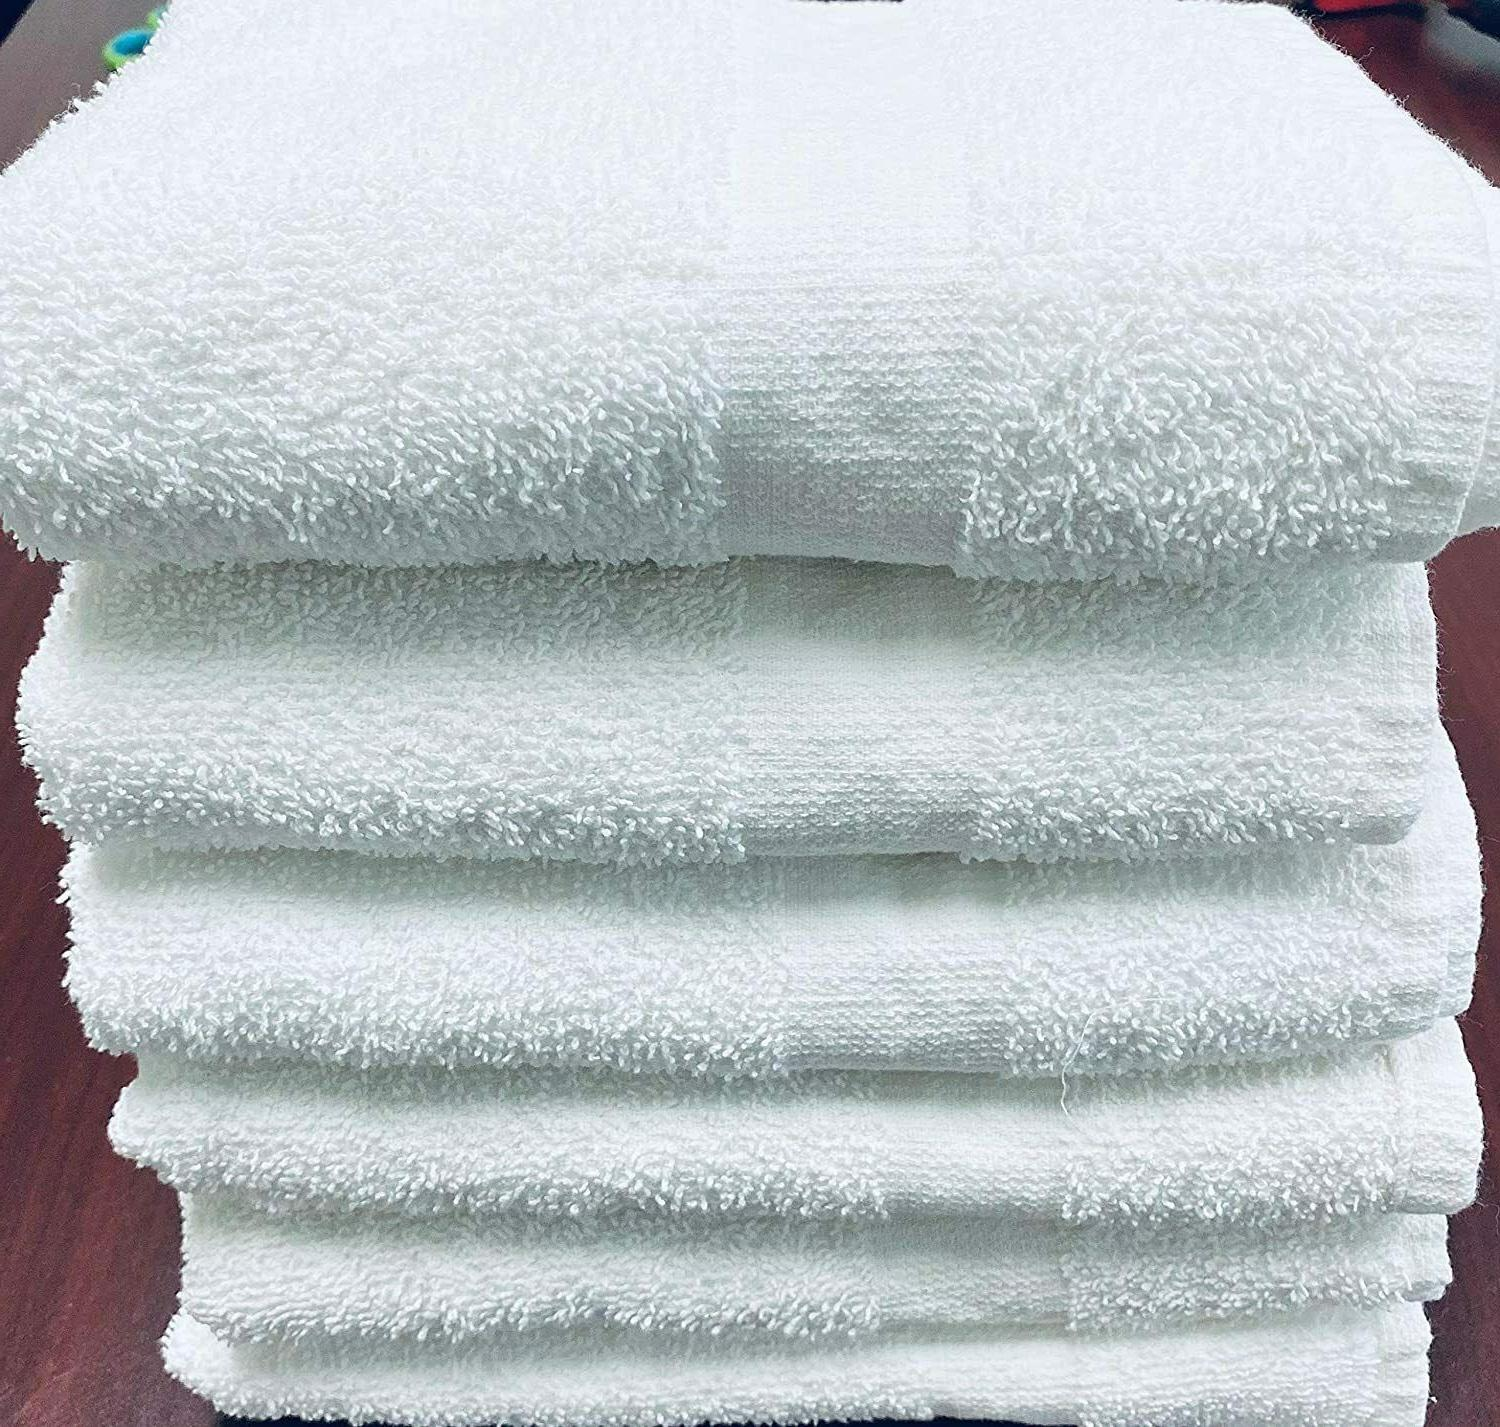 Hand Towels Cotton-Pack of 12 Hotel, Gym Ship